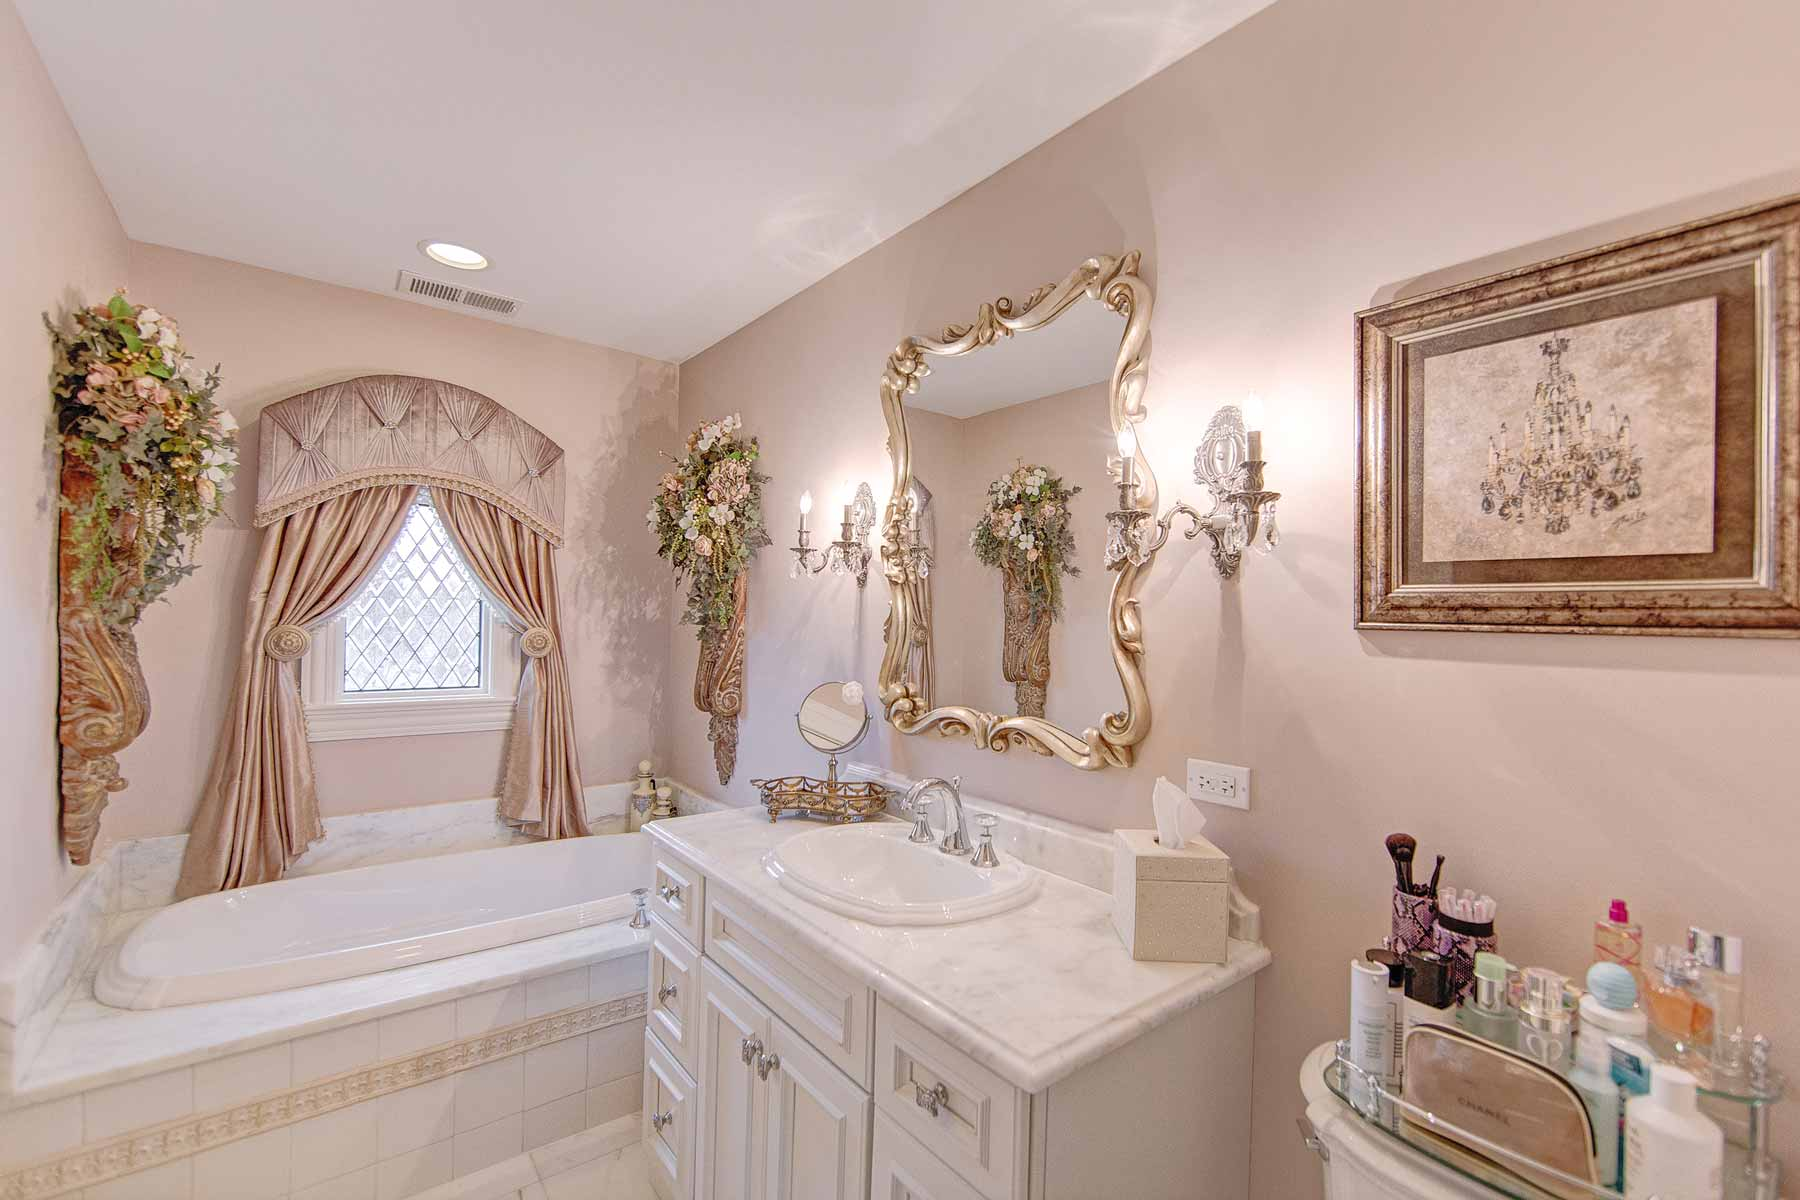 Girls luxury bathroom interior design for Bathroom photos of ladies